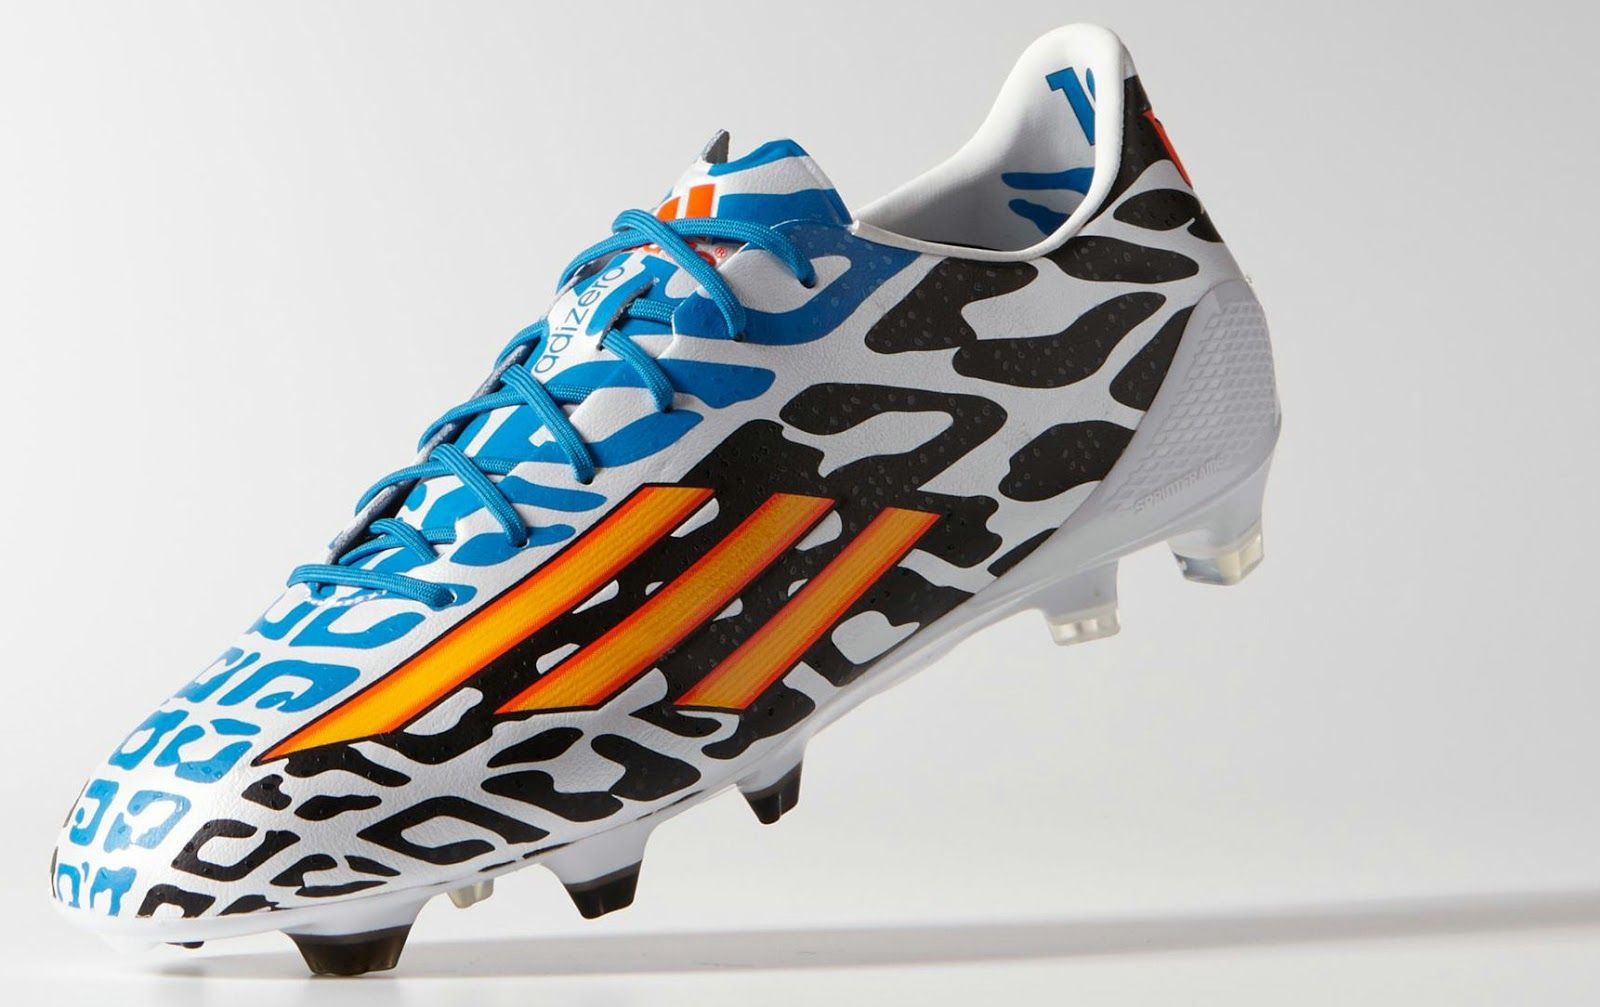 pulgada Analista Penetración  Adidas Football Boots @TeamMessi 2014 World Cup Boot #9ine | Messi boots,  Messi shoes, Adidas cleats